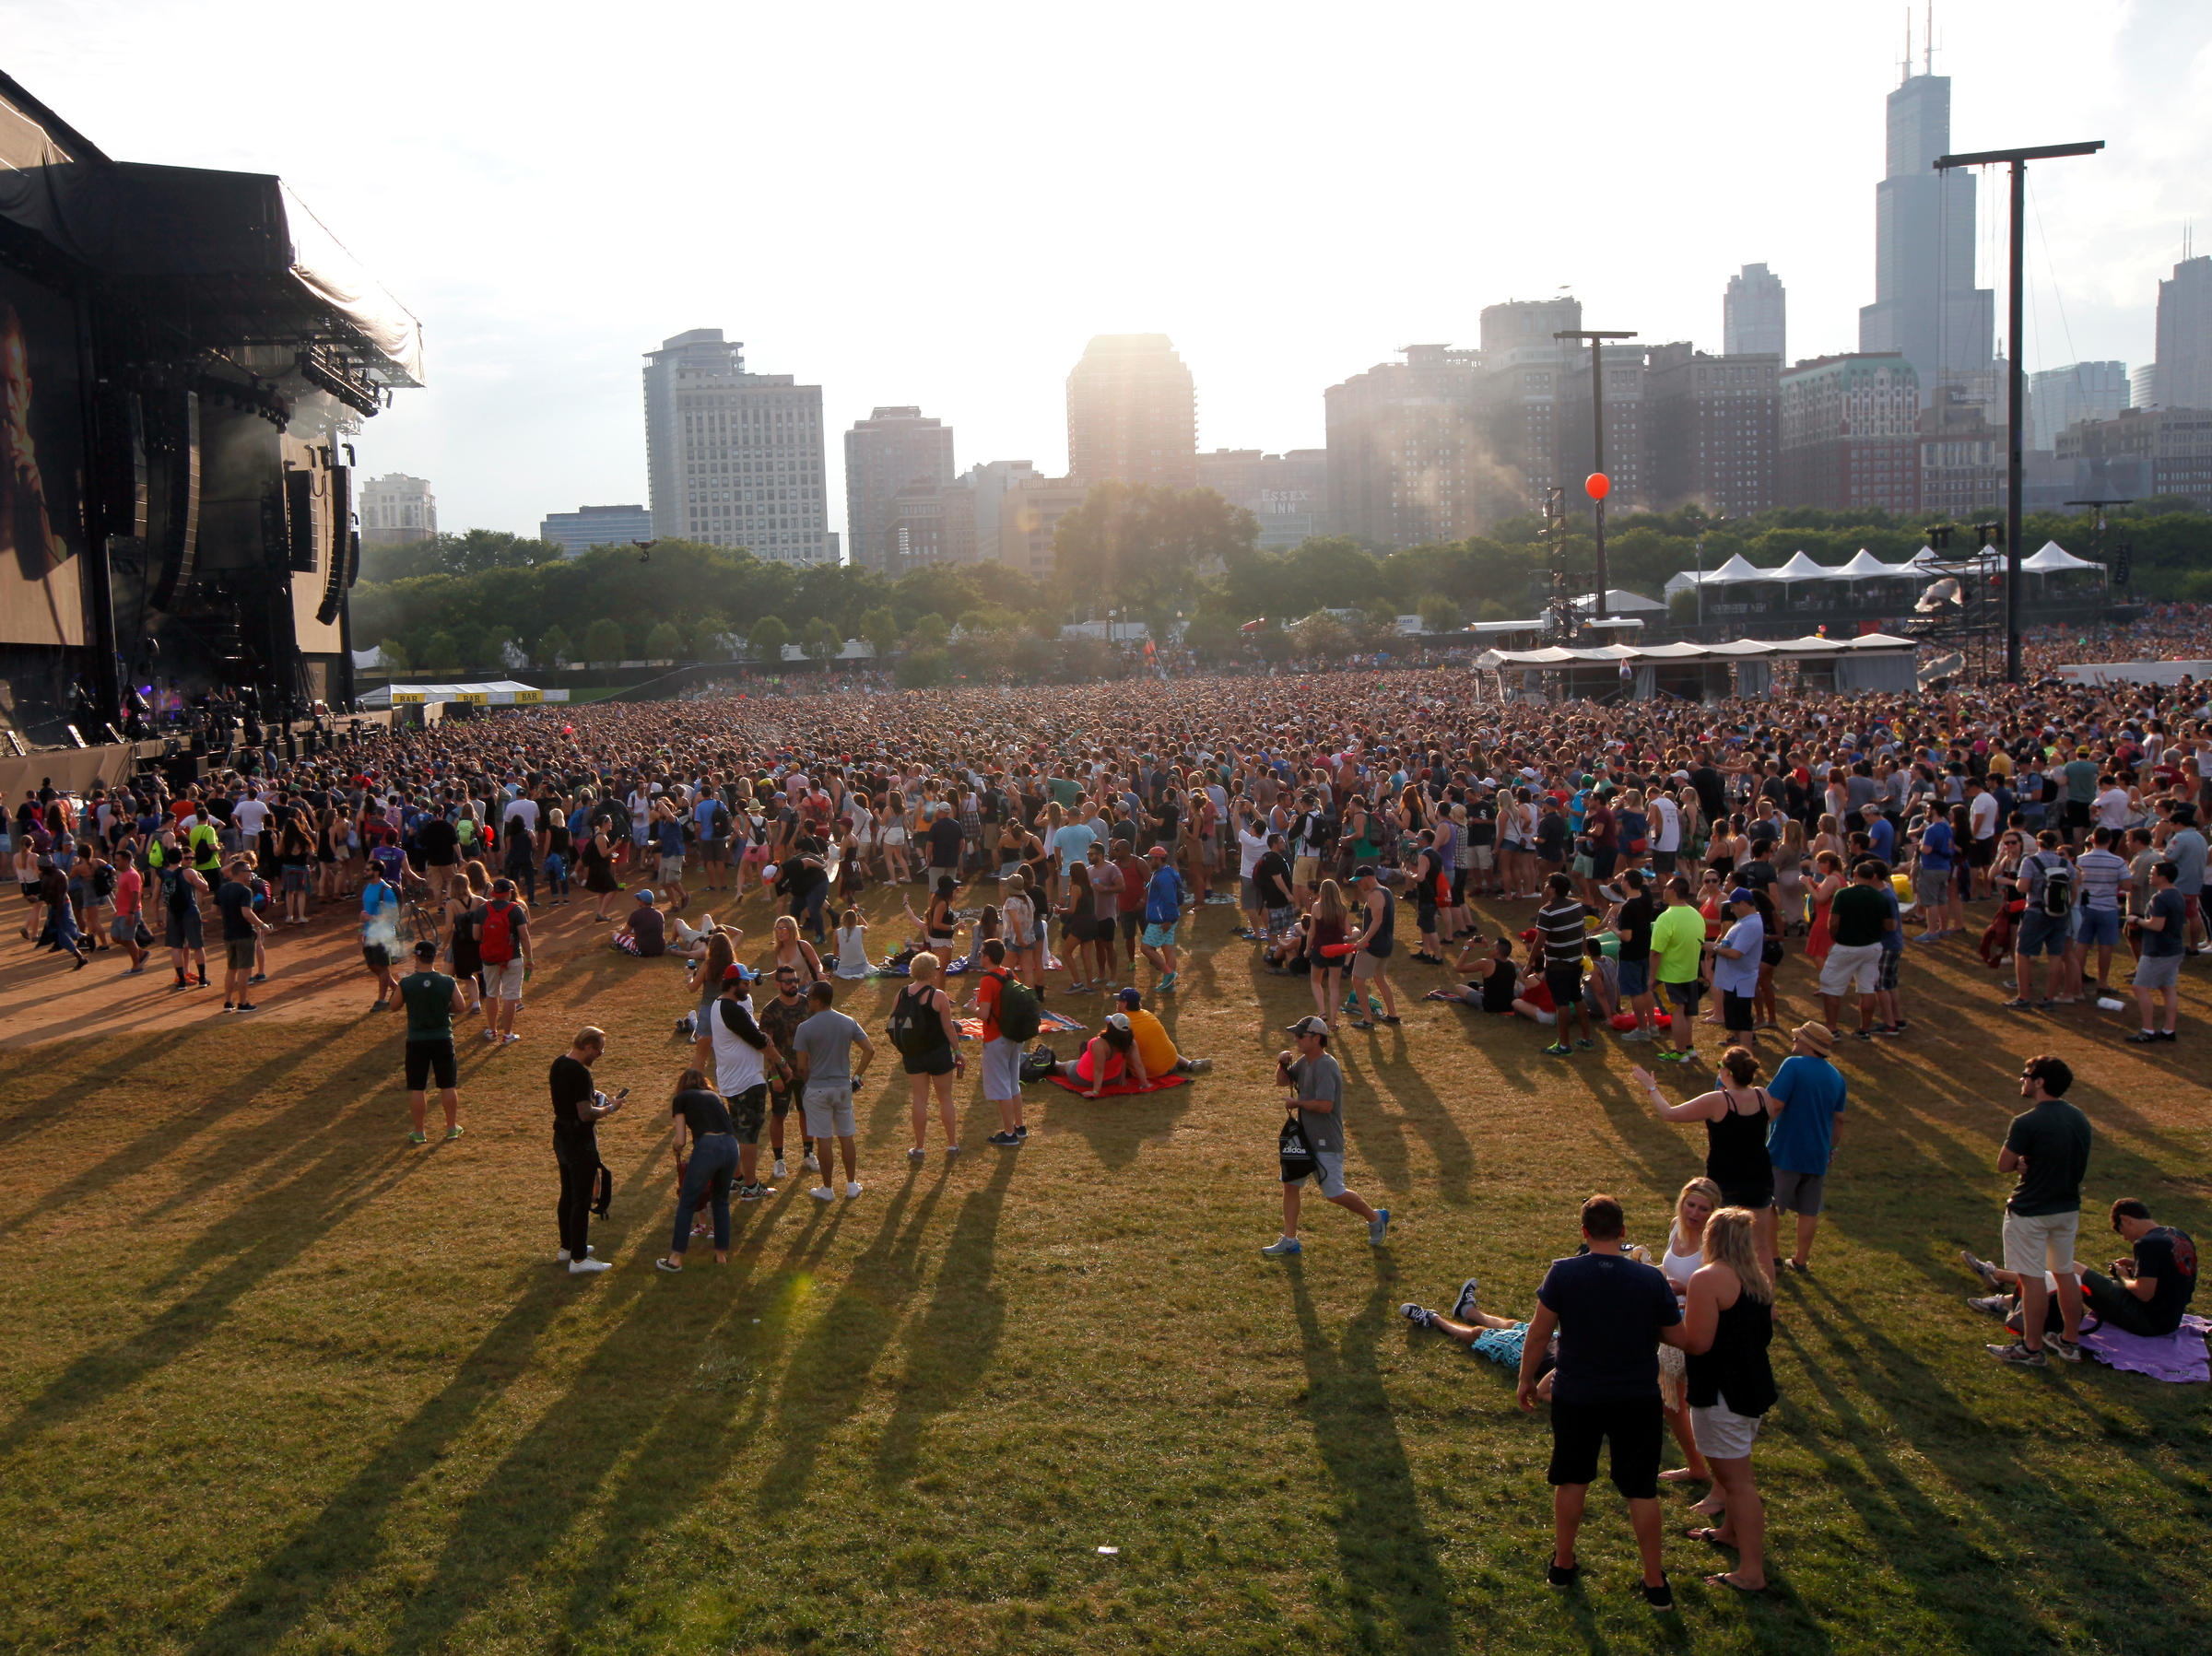 Vegas Shooter Booked Hotel Room Overlooking Lollapalooza